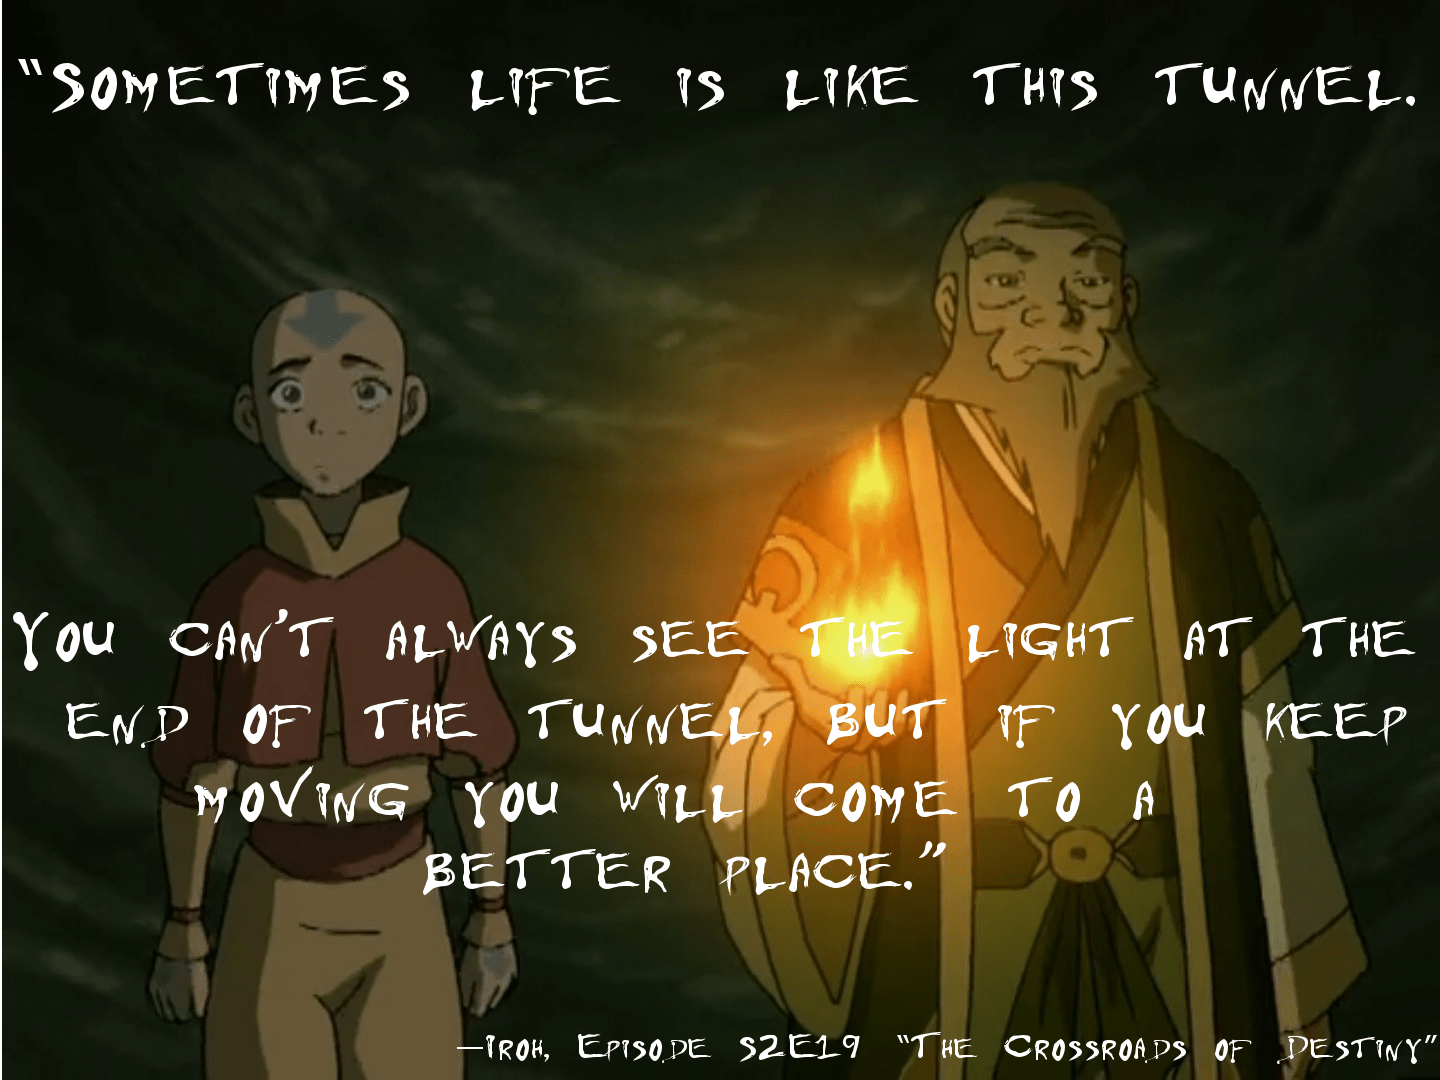 [Image] Iroh on moving forward